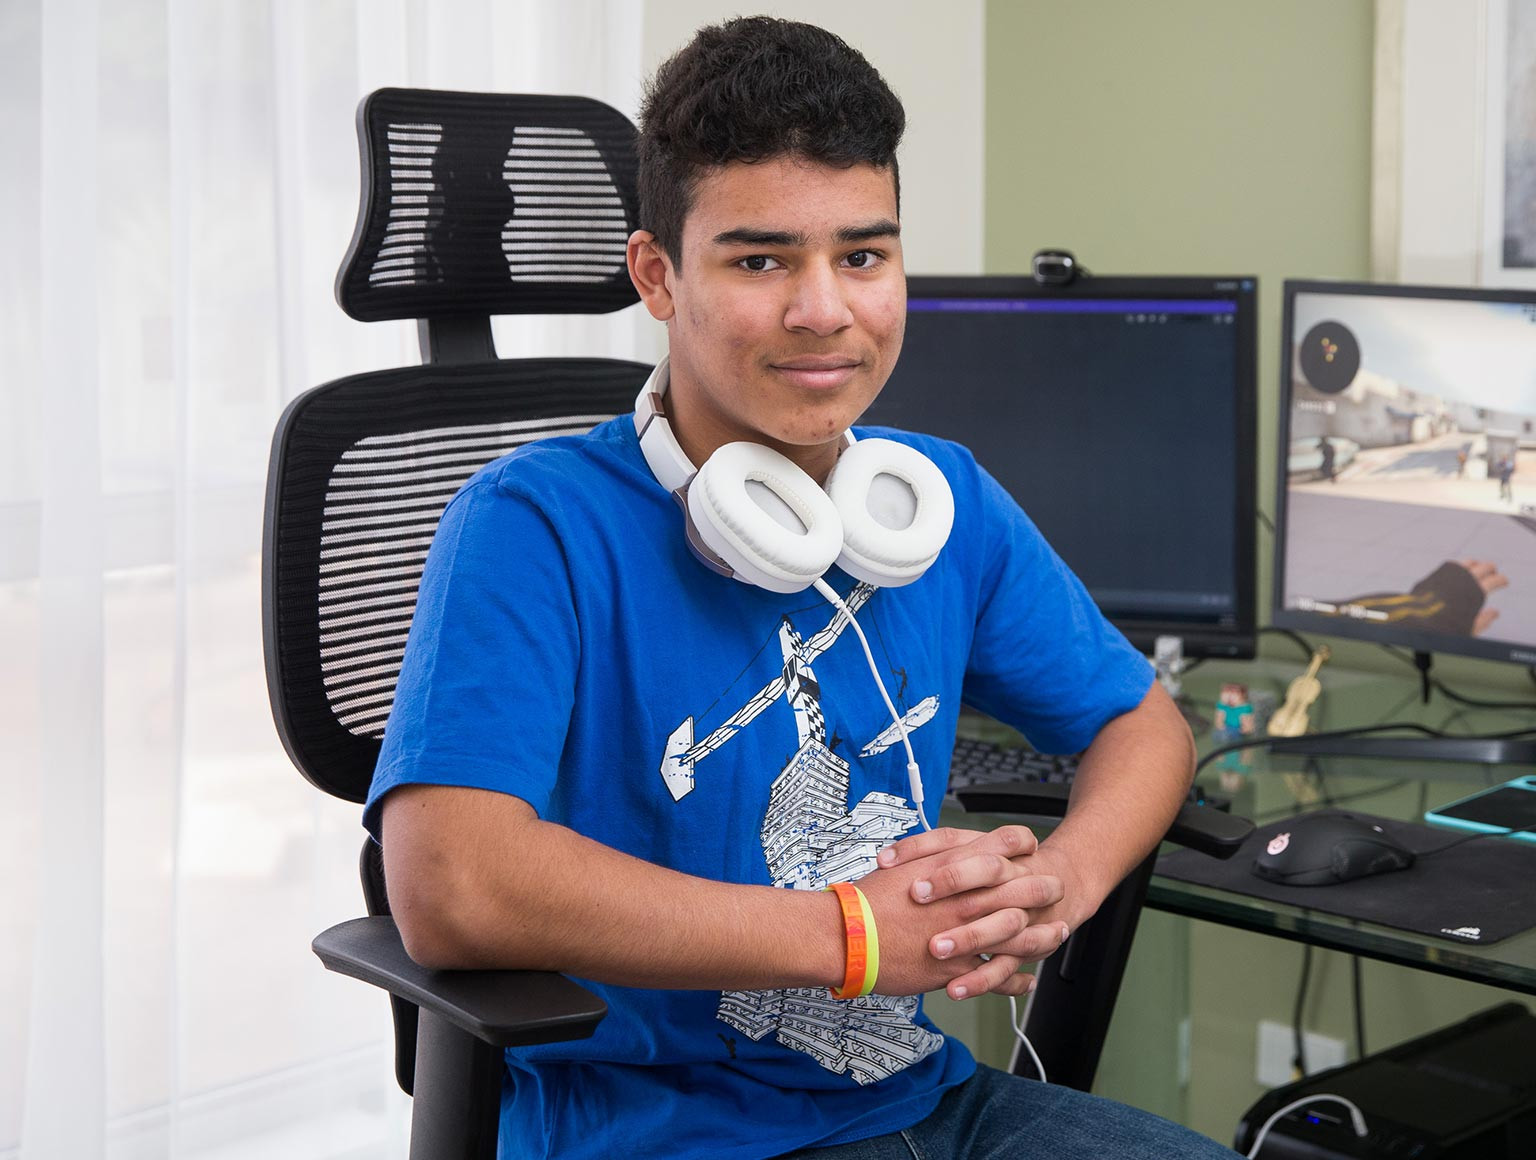 Photo of a smiling teenage boy with short dark hair wearing a blue T-shirt and head phones around his neck, sitting at a desk on which there are two computer screens, one with a video game displayed.